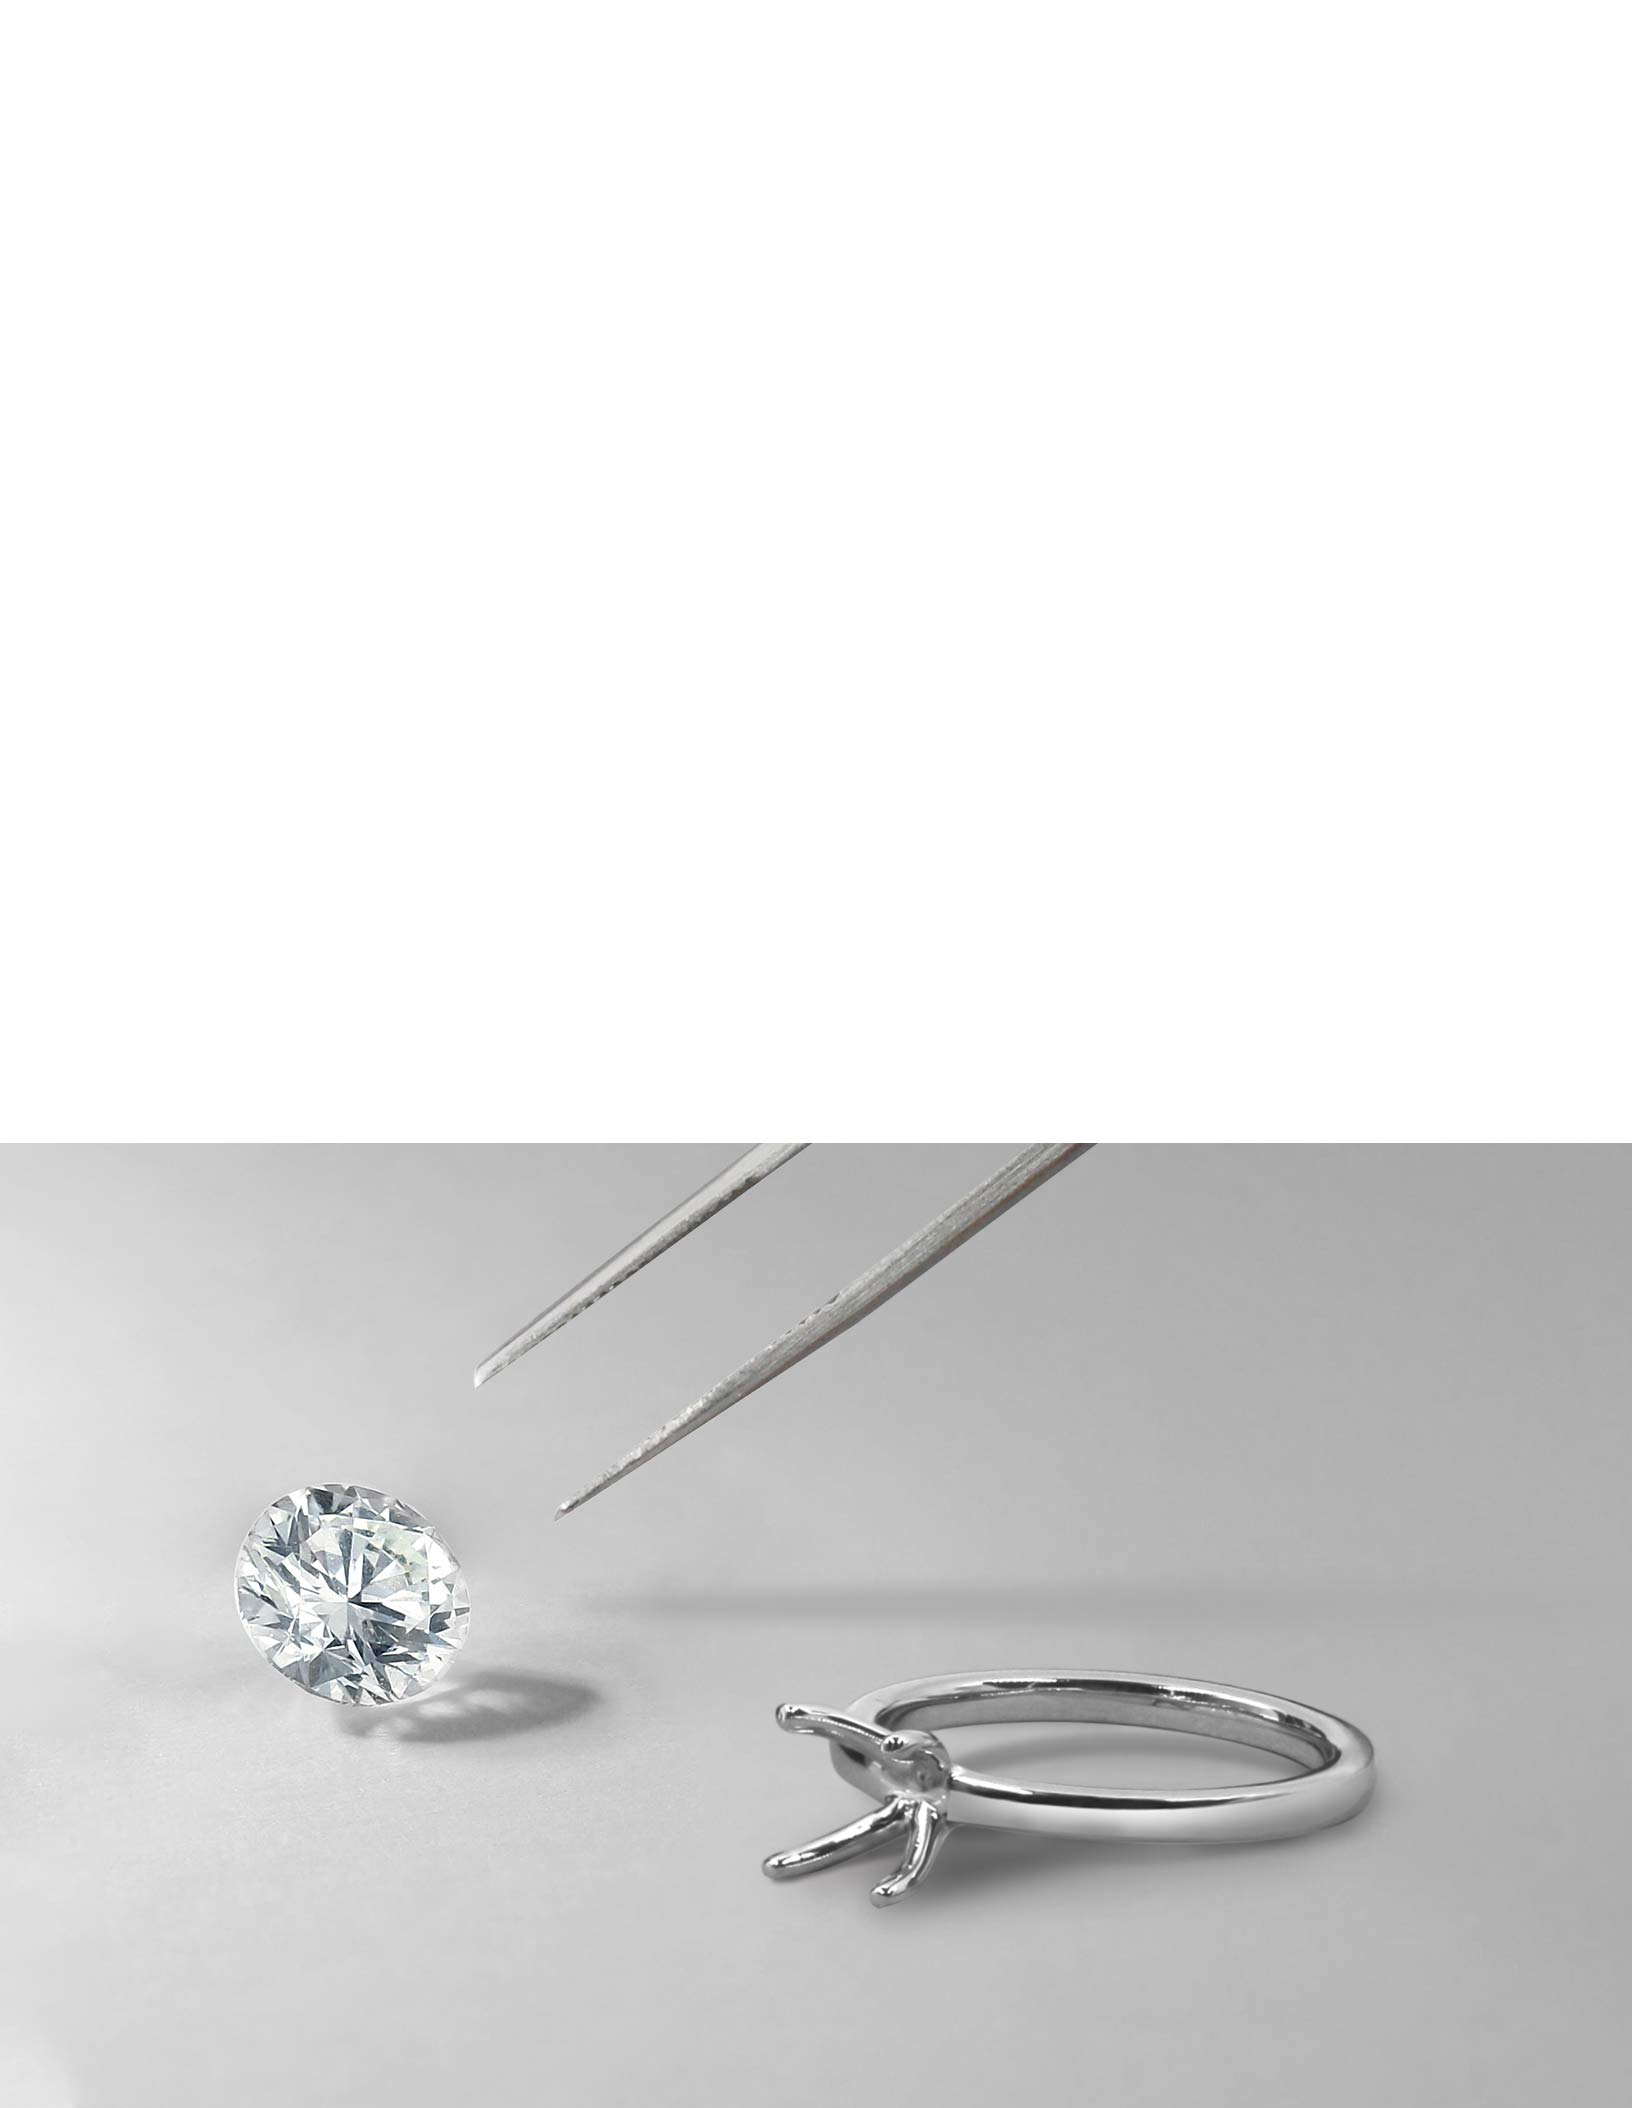 Halo Diamond Engagement Rings - Steven Stone